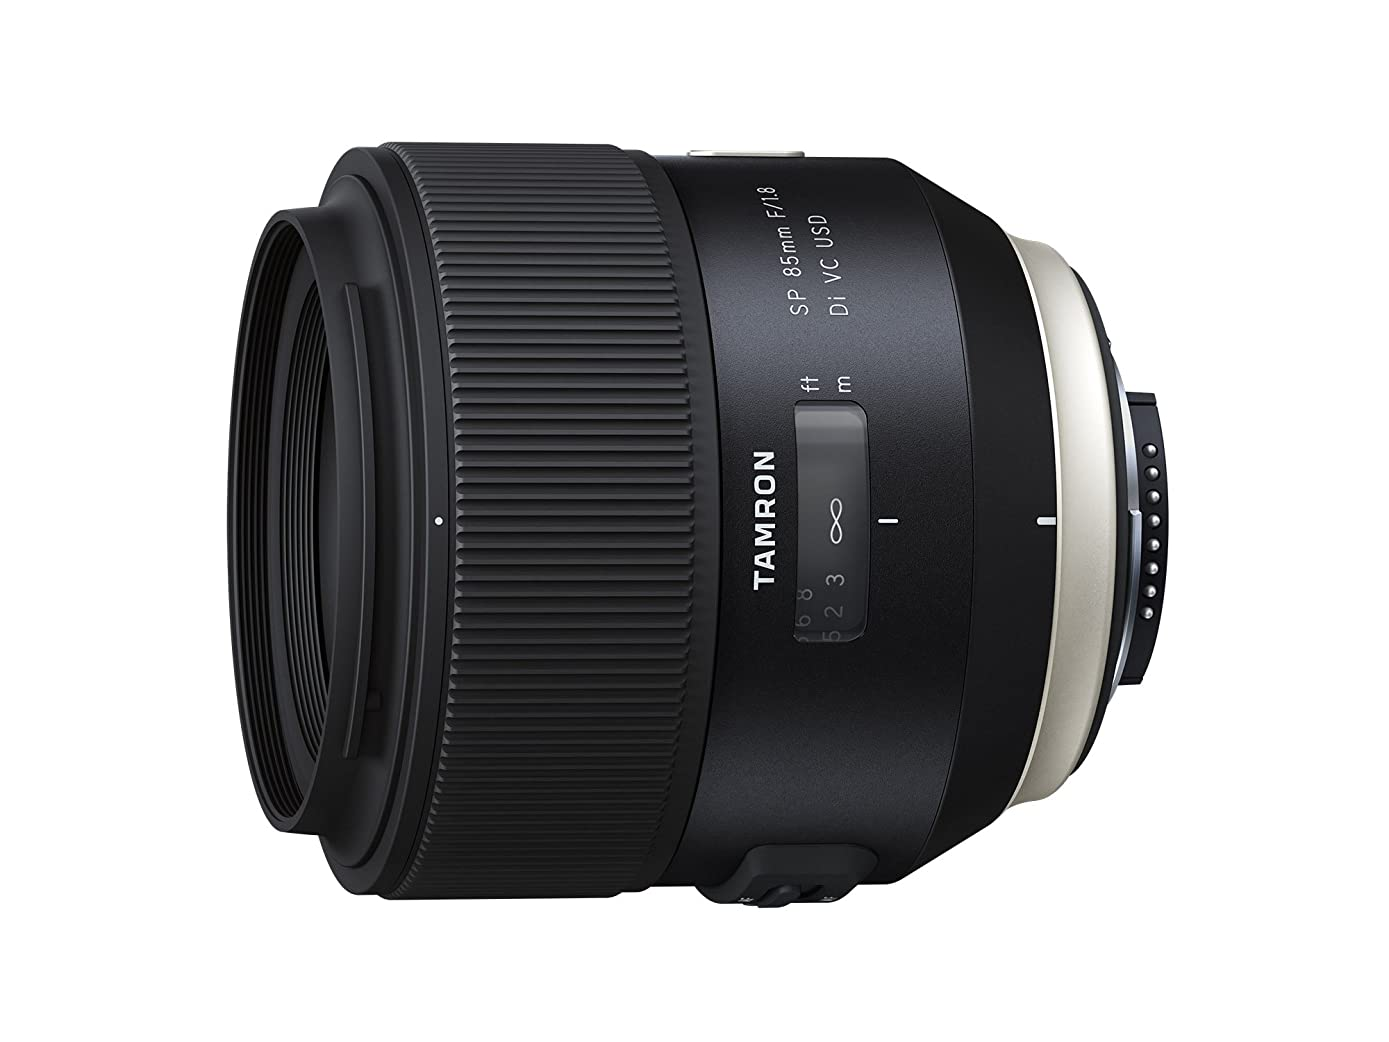 Tamron AFF016N700 SP 85mm F/1.8 Di VC USD Lens (Black)